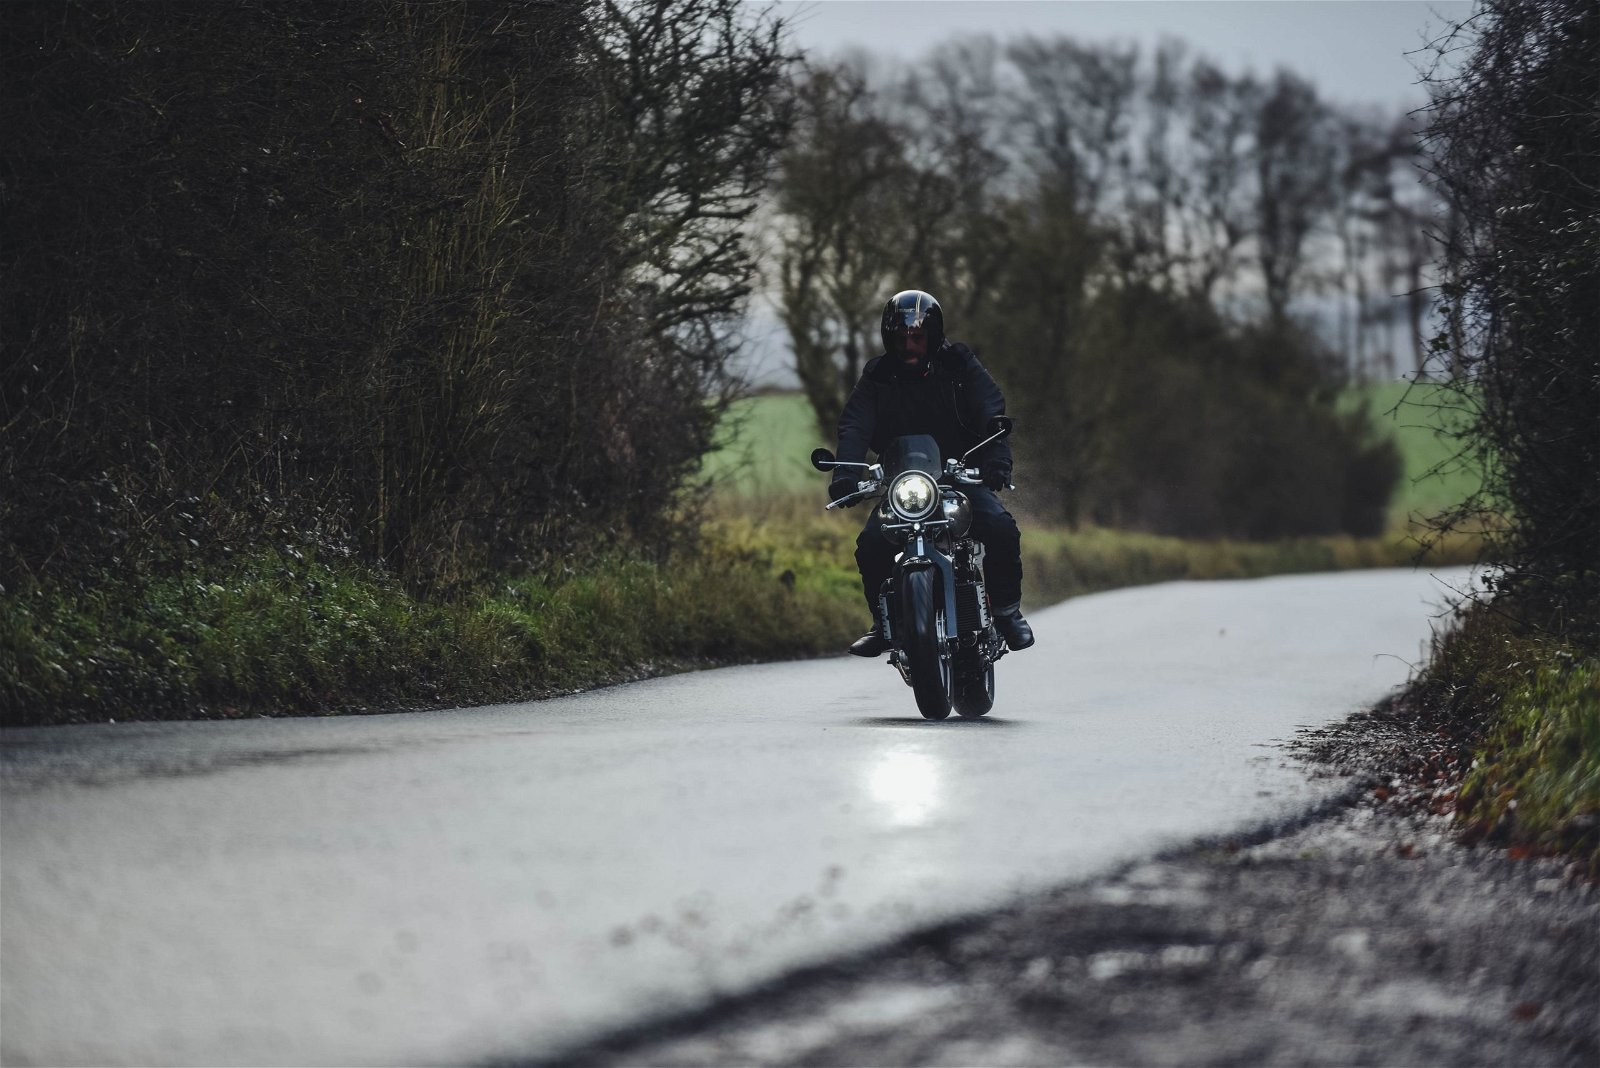 Motorcycle riding on road